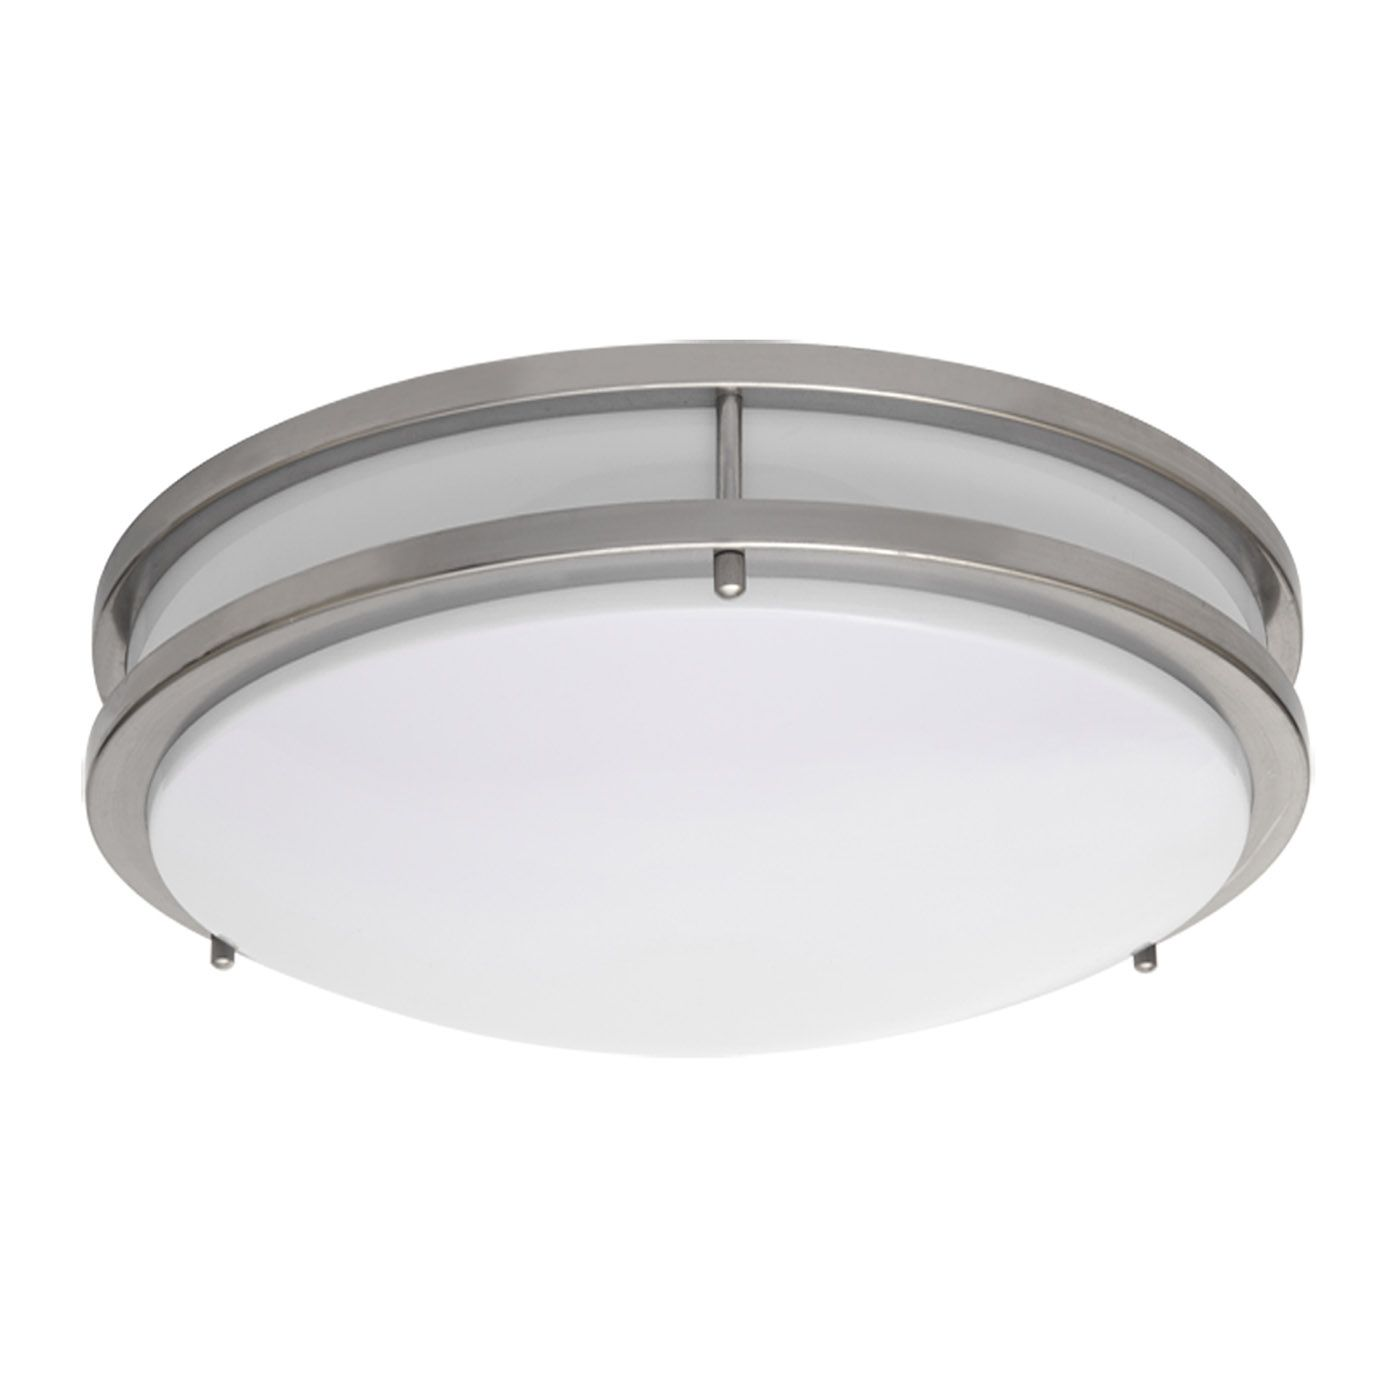 Amax Lighting LED Ceiling Fixtures LED JR00 LED Two Ring Flush Mount